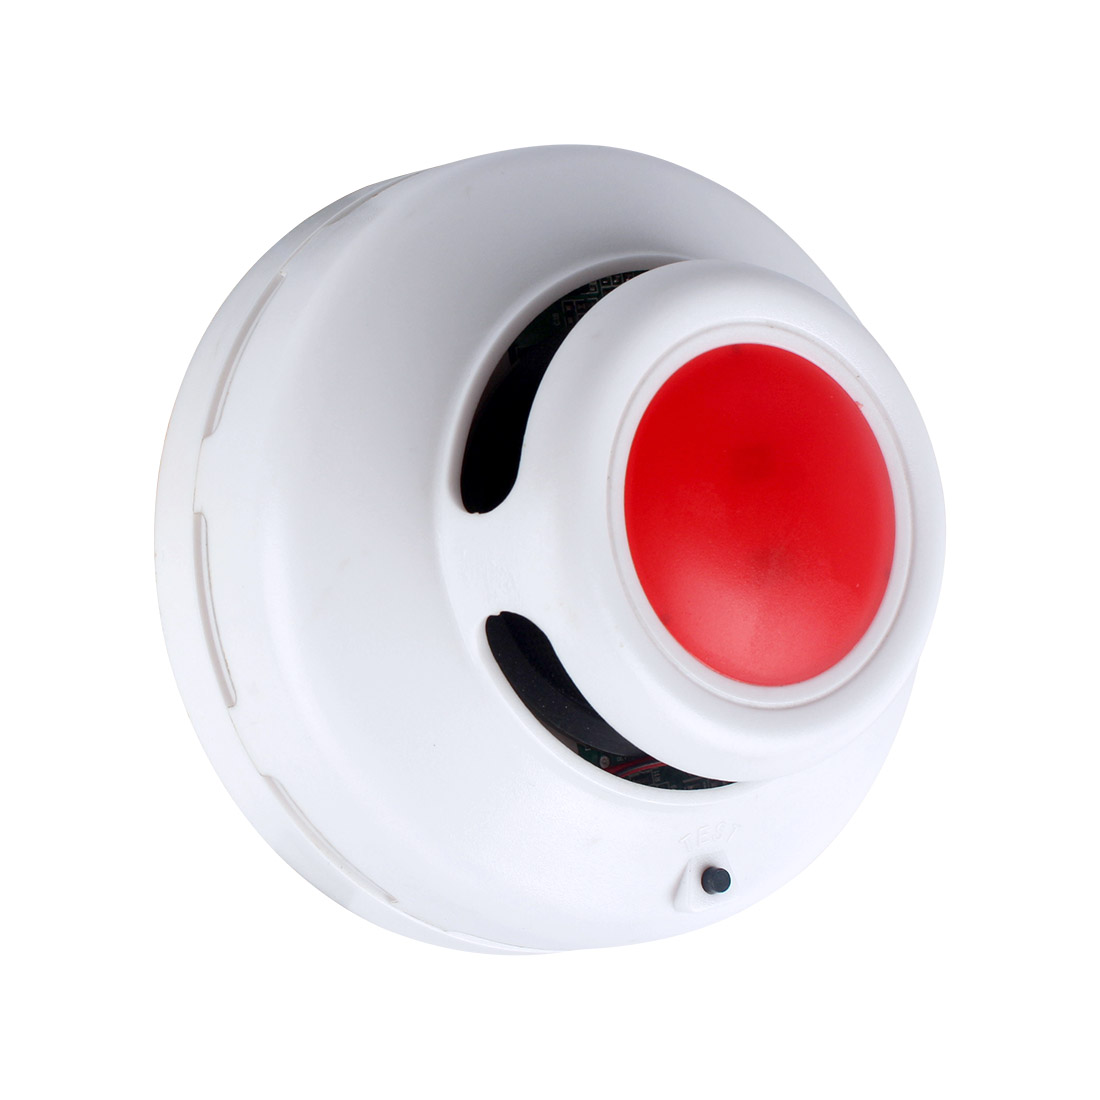 Indoor Home Safety Garden High Sensitive Standalone Photoelectric Smoke Detector Fire Alarm Sensor For Security MCU Technology